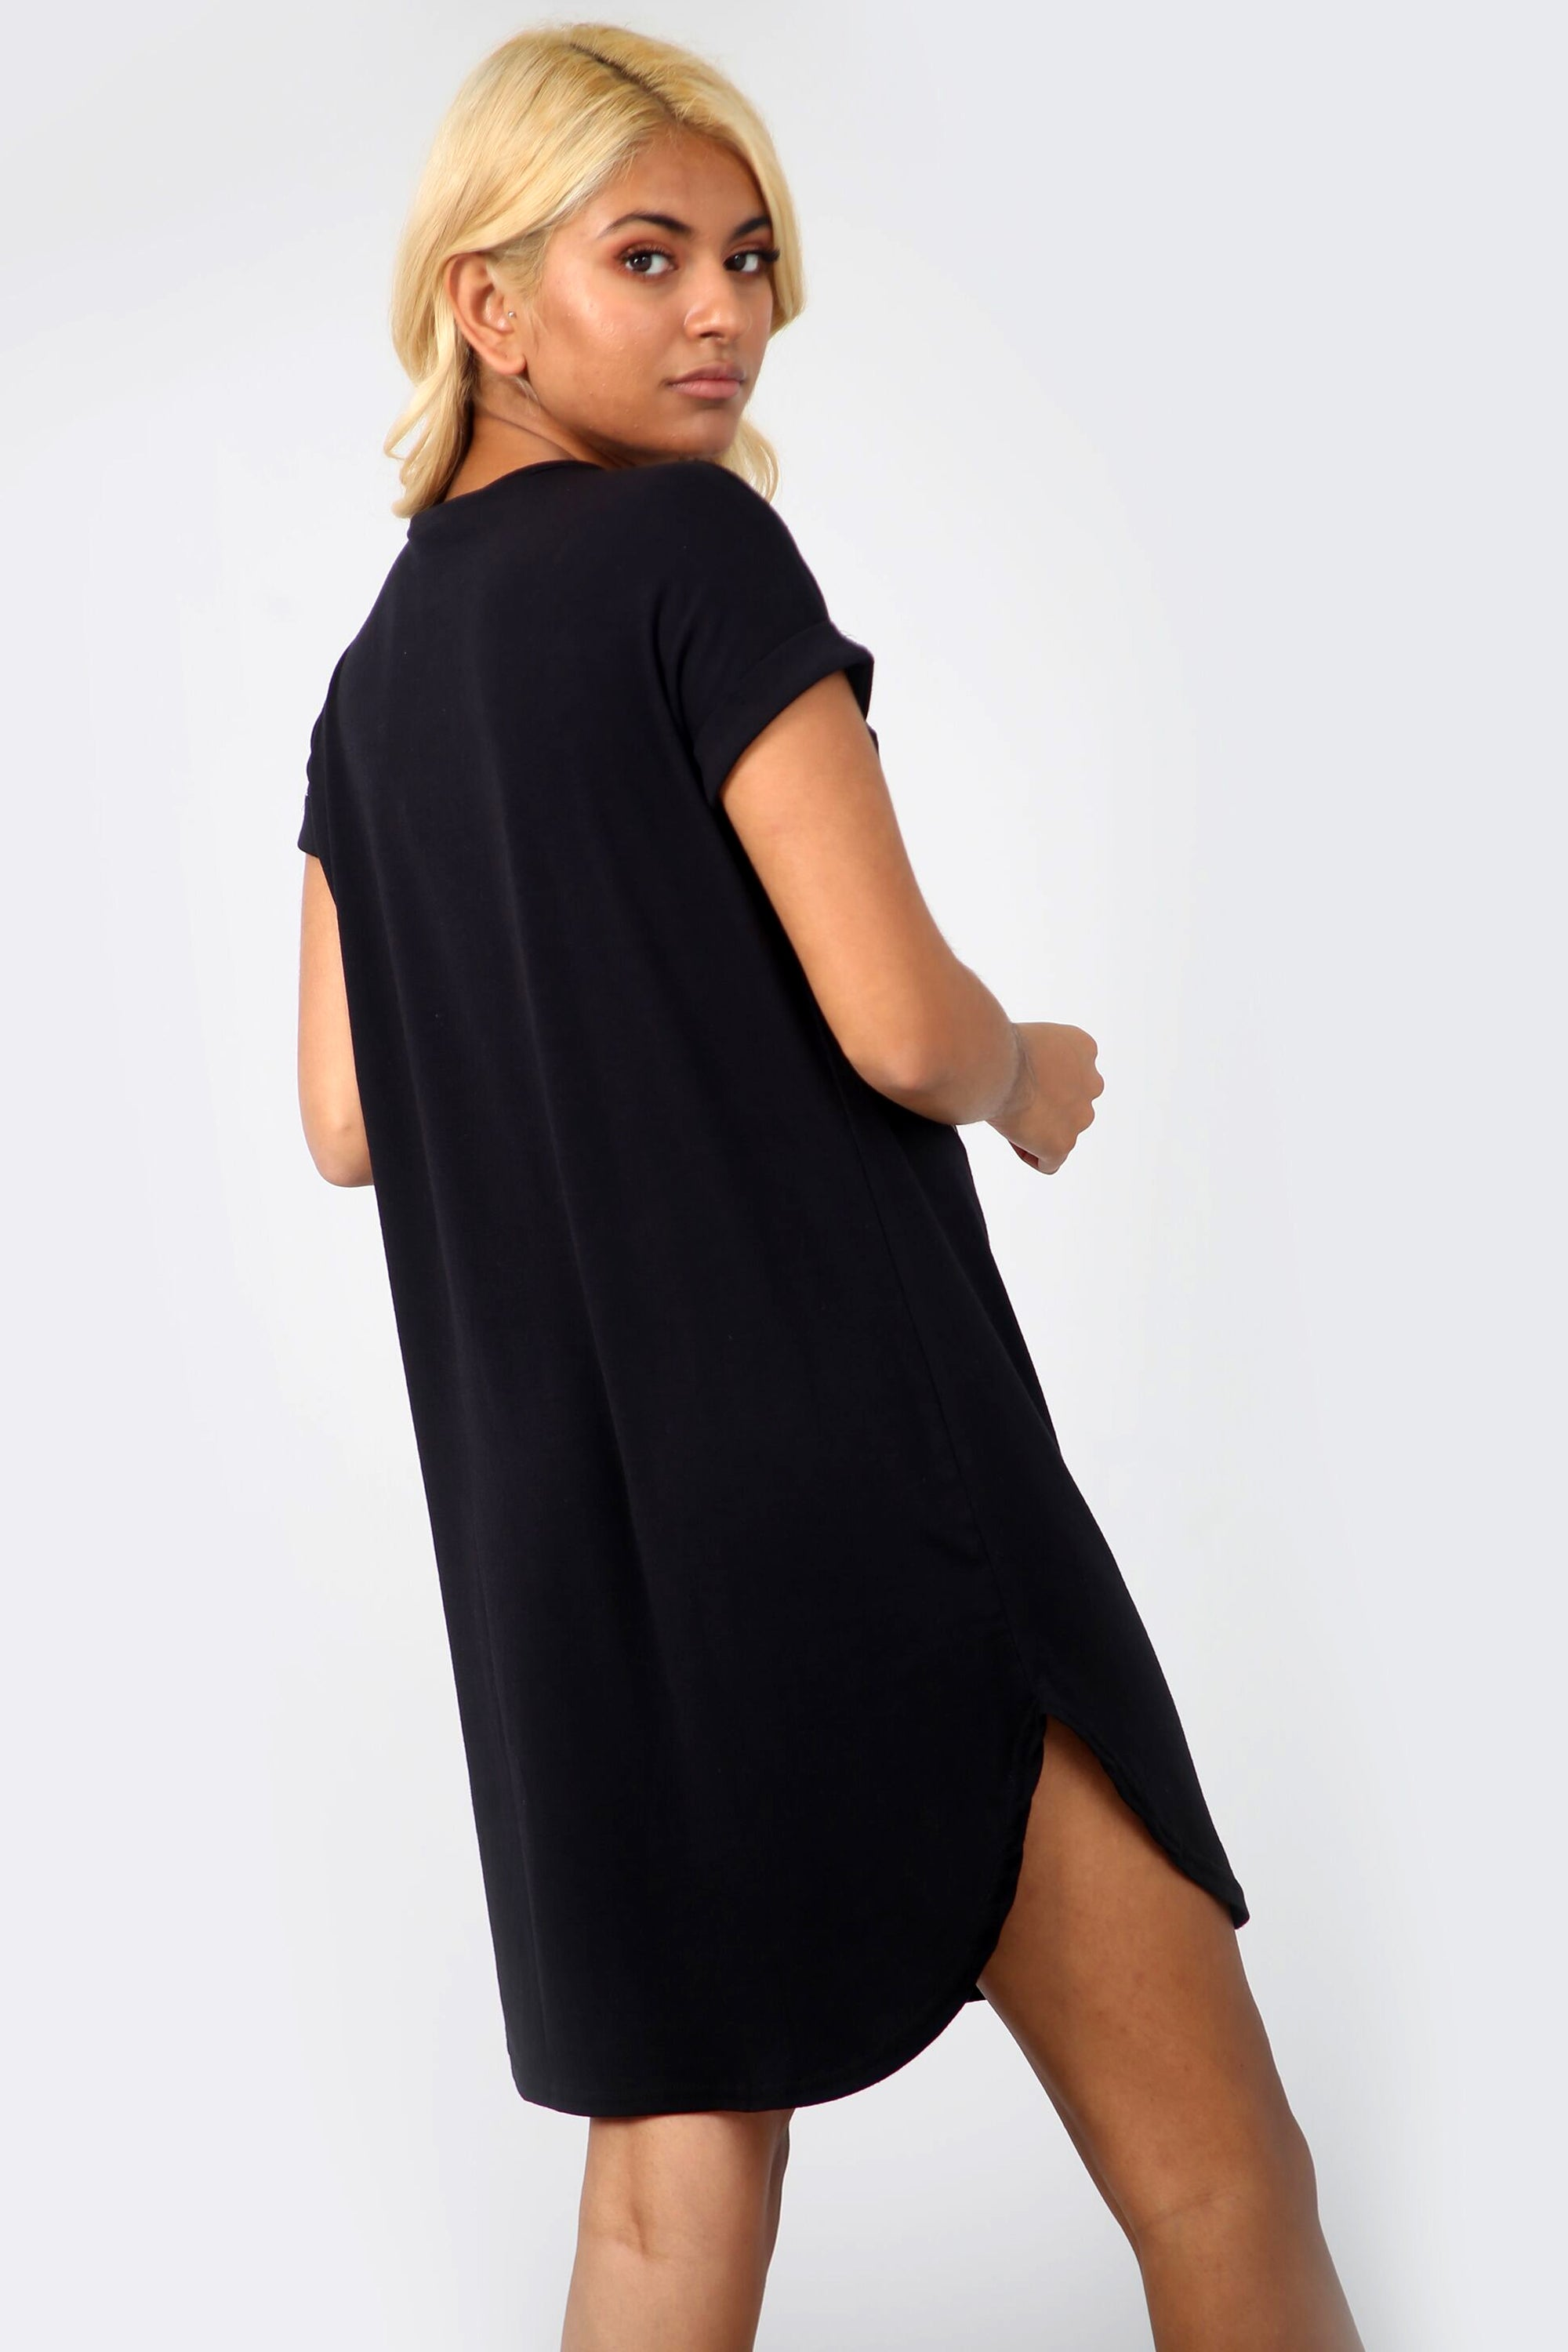 La Femme Slogan Curved Hem Tshirt Dress in Black - bejealous-com